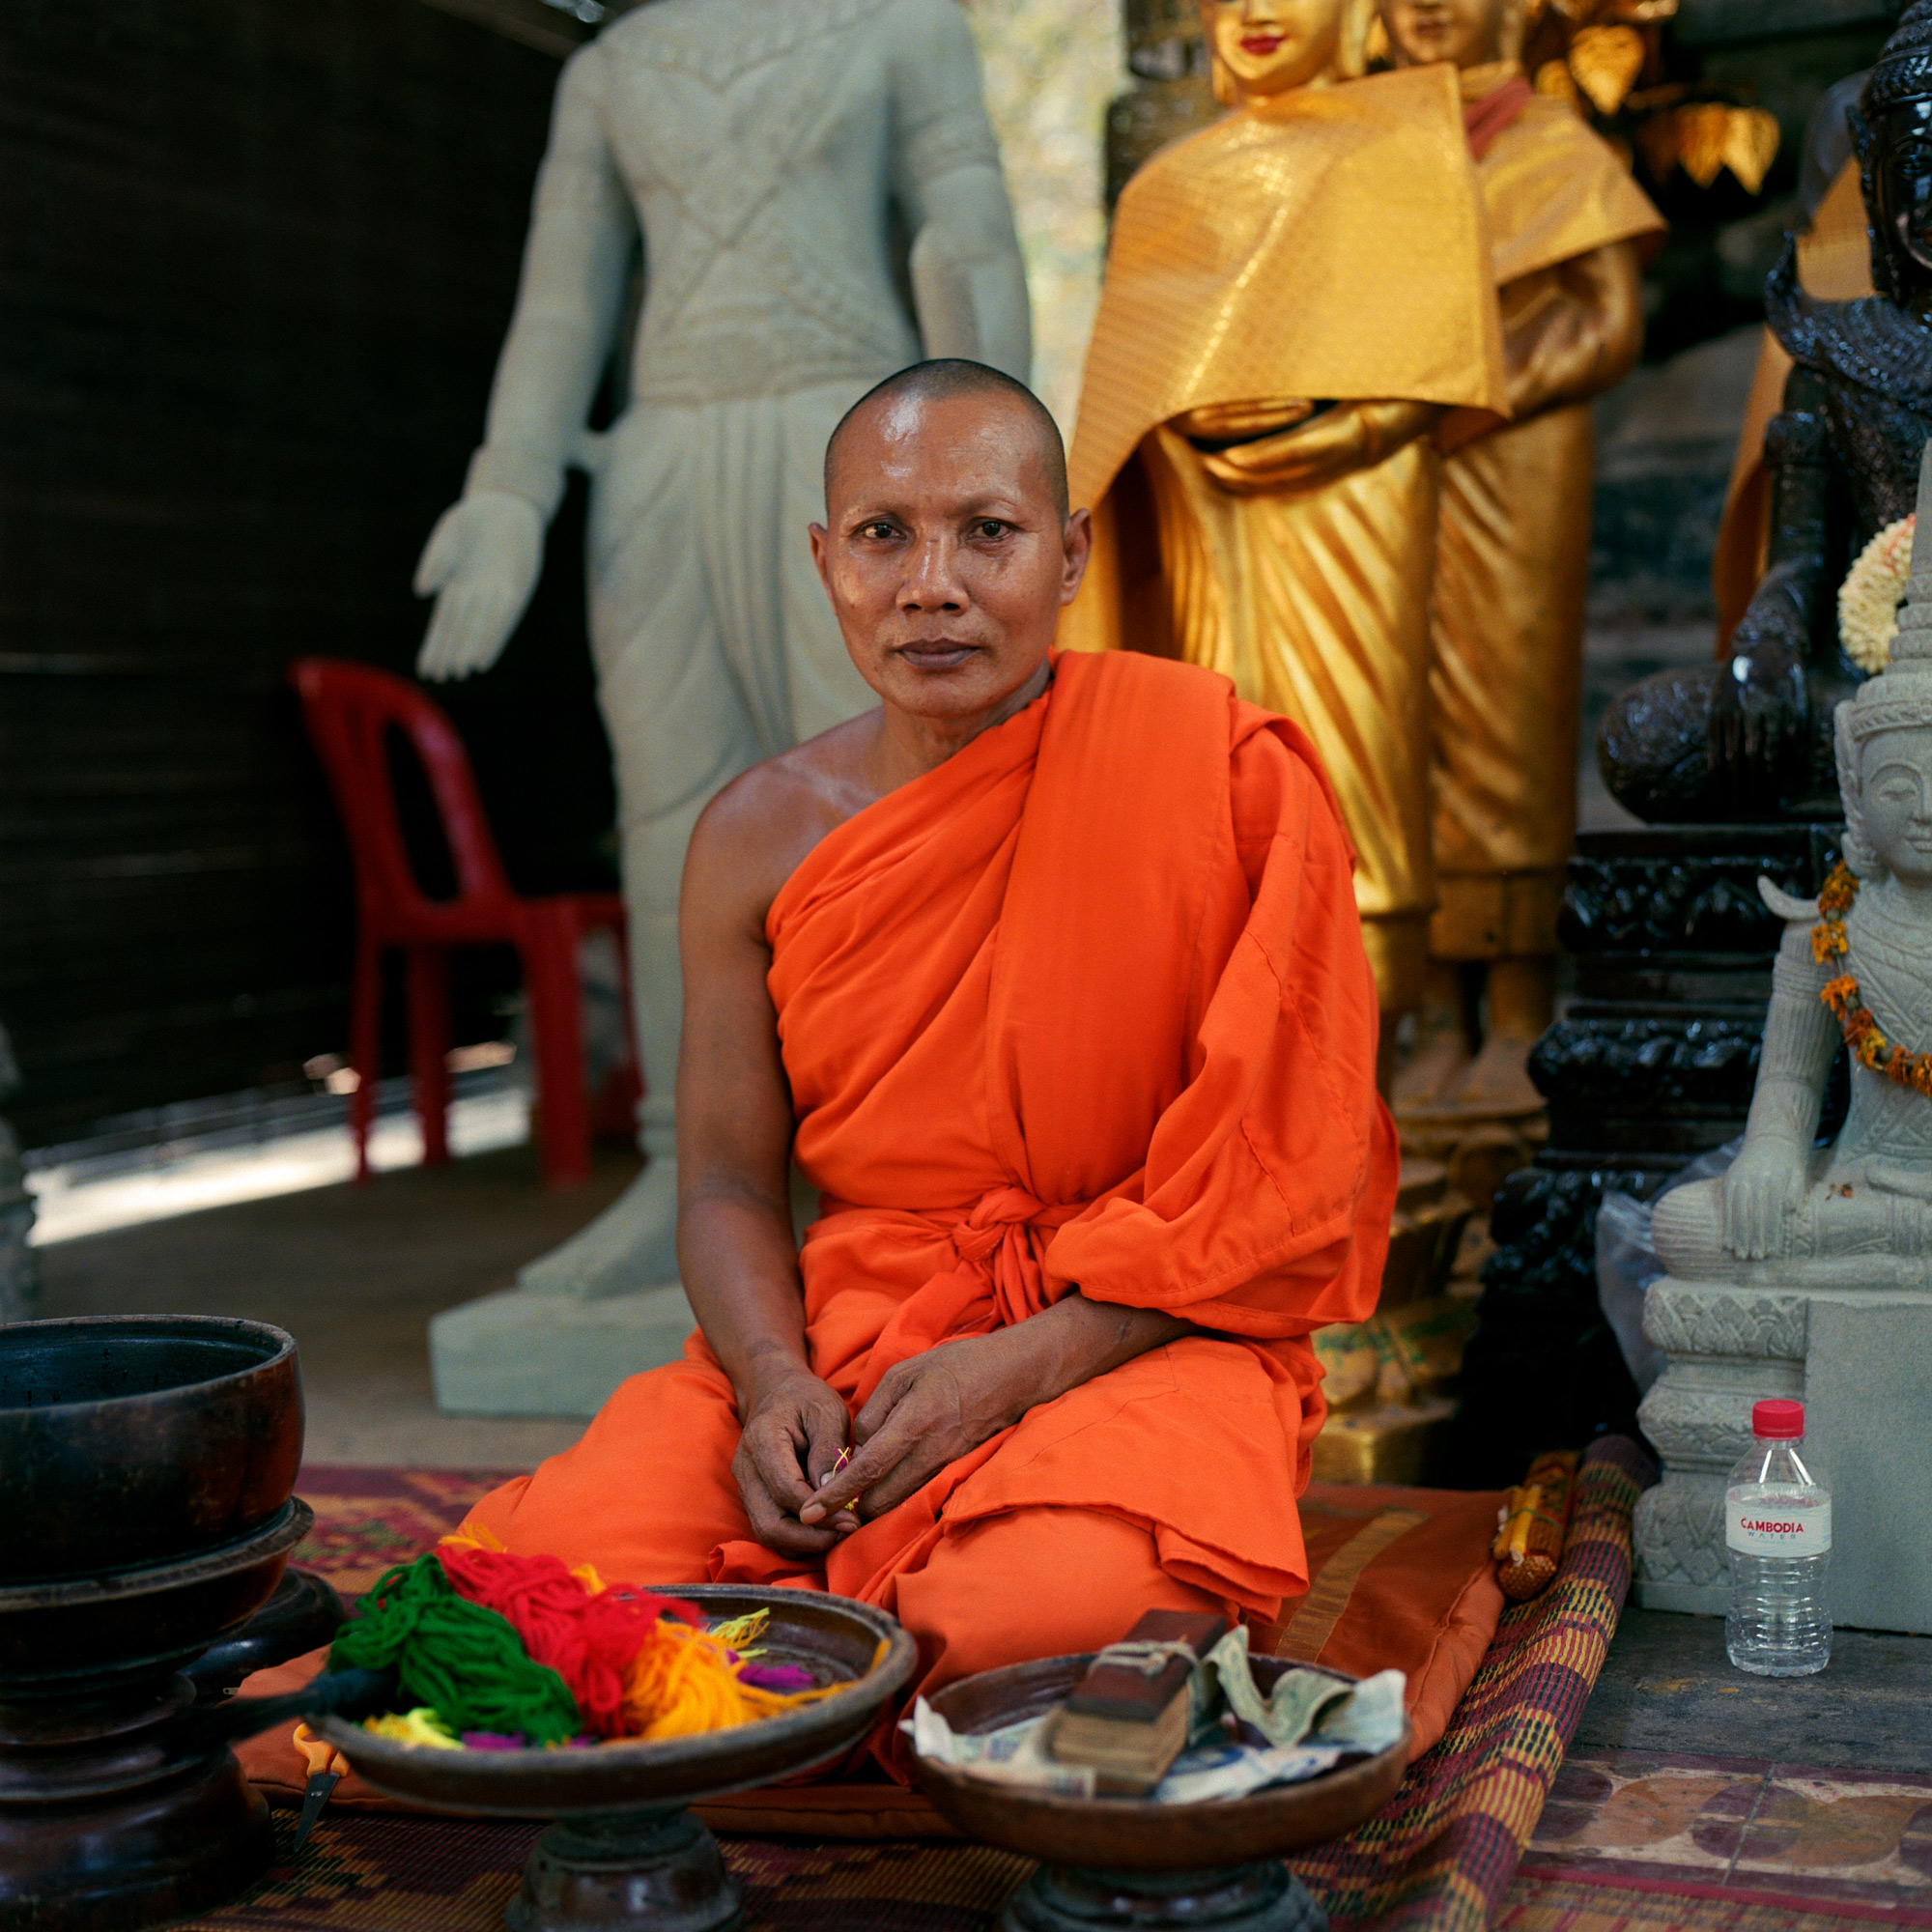 Budhist monk at temple near Angkor Wat in Siem Reap Cambodia, Eastern Travels, Photography By Ioannis Koussertari